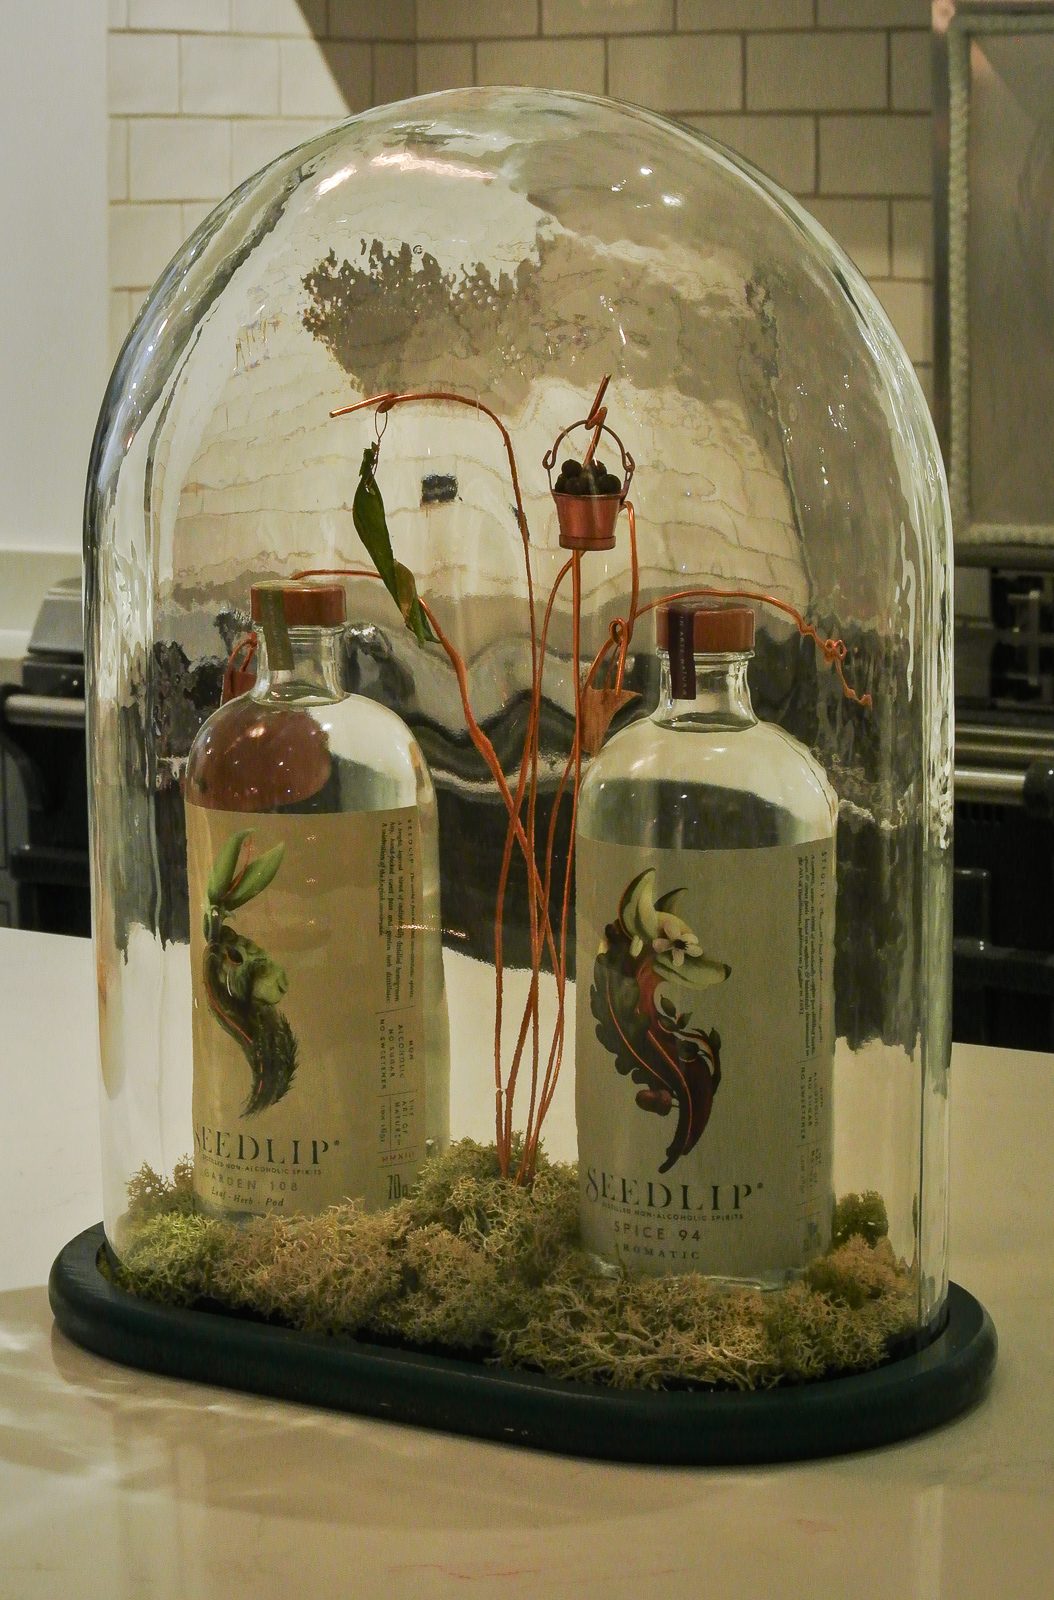 Two Seedlip bottles in a terranium - garden 108 and spice 94